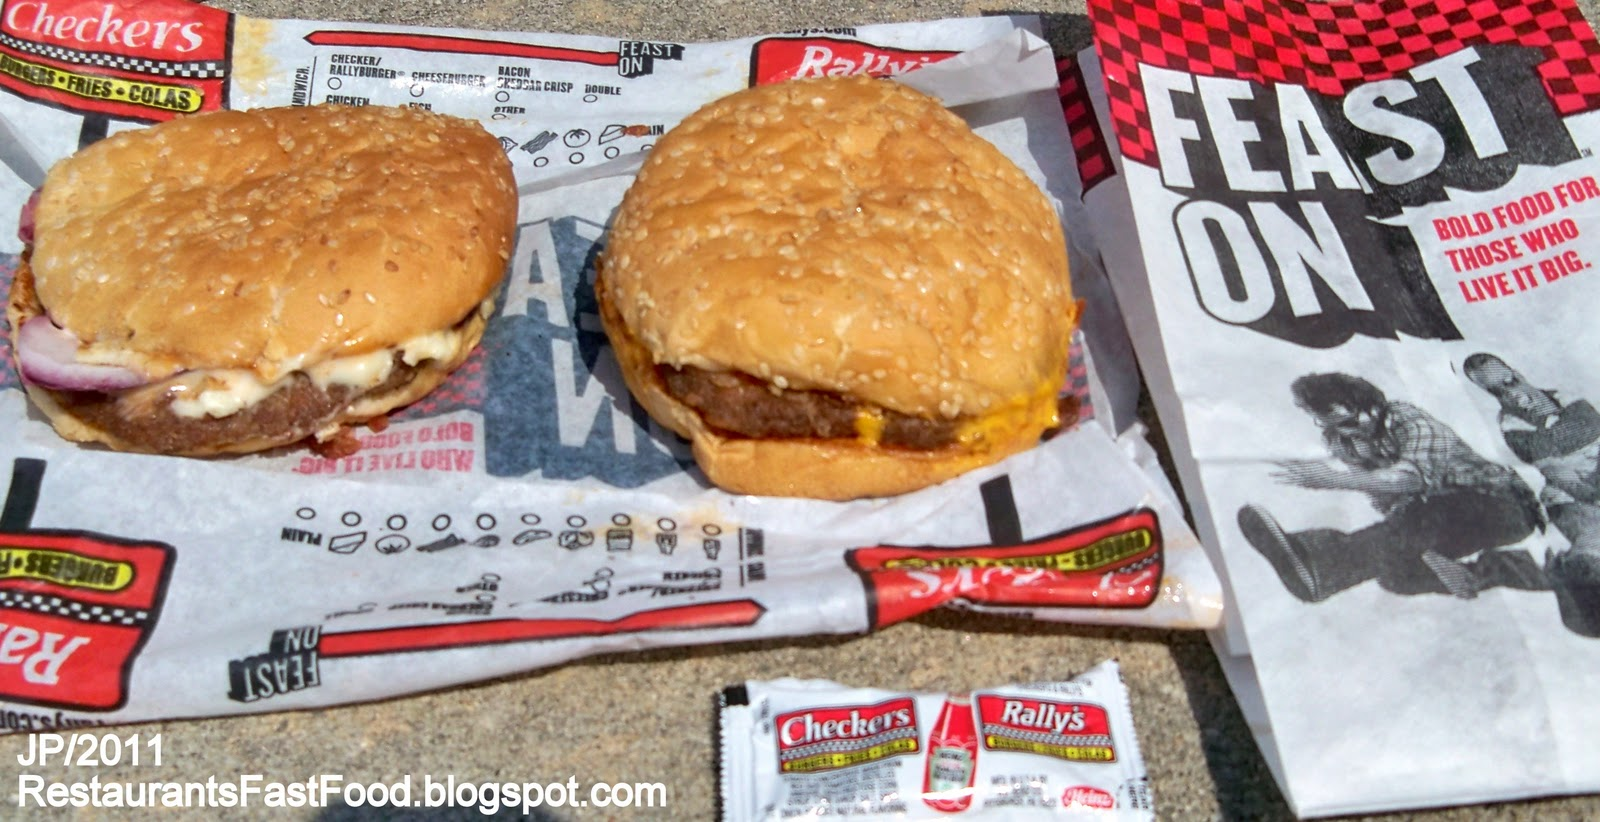 Checkers Fast Food Restaurant Menu